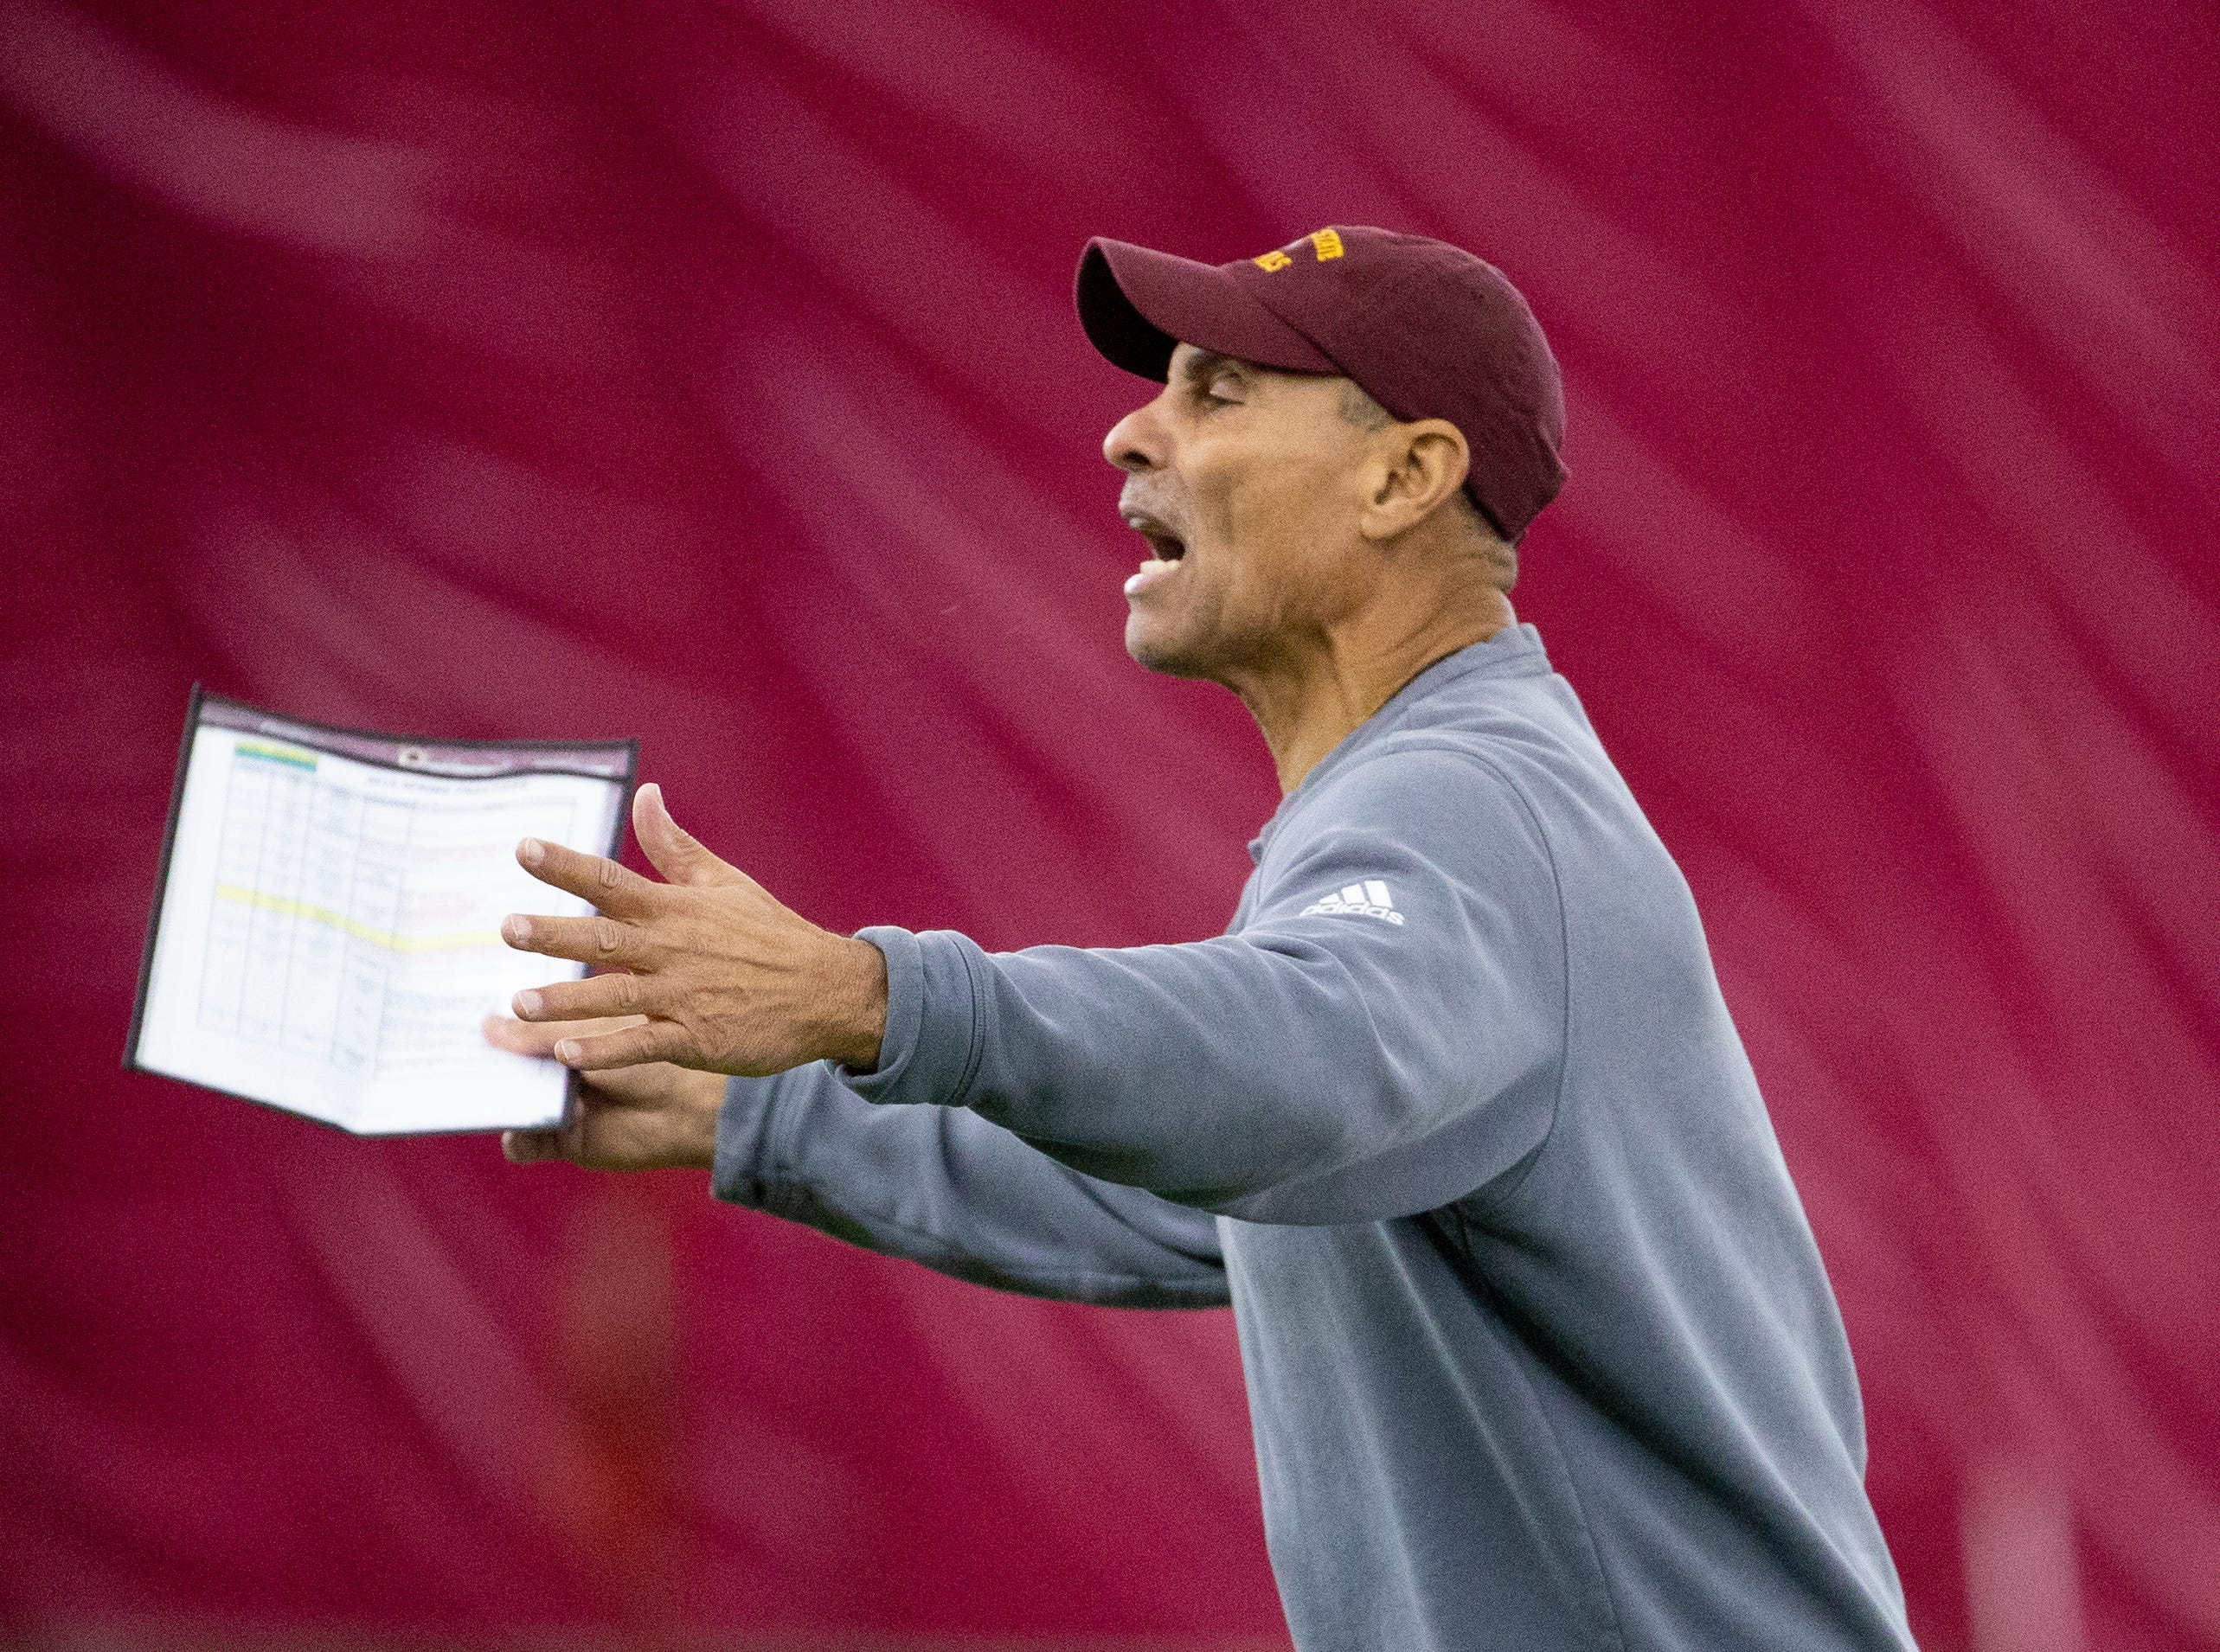 ASU head football coach Herm Edwards coaches his defense during ASU spring football practice in the Verde Dickey Dome in Tempe on February 21.